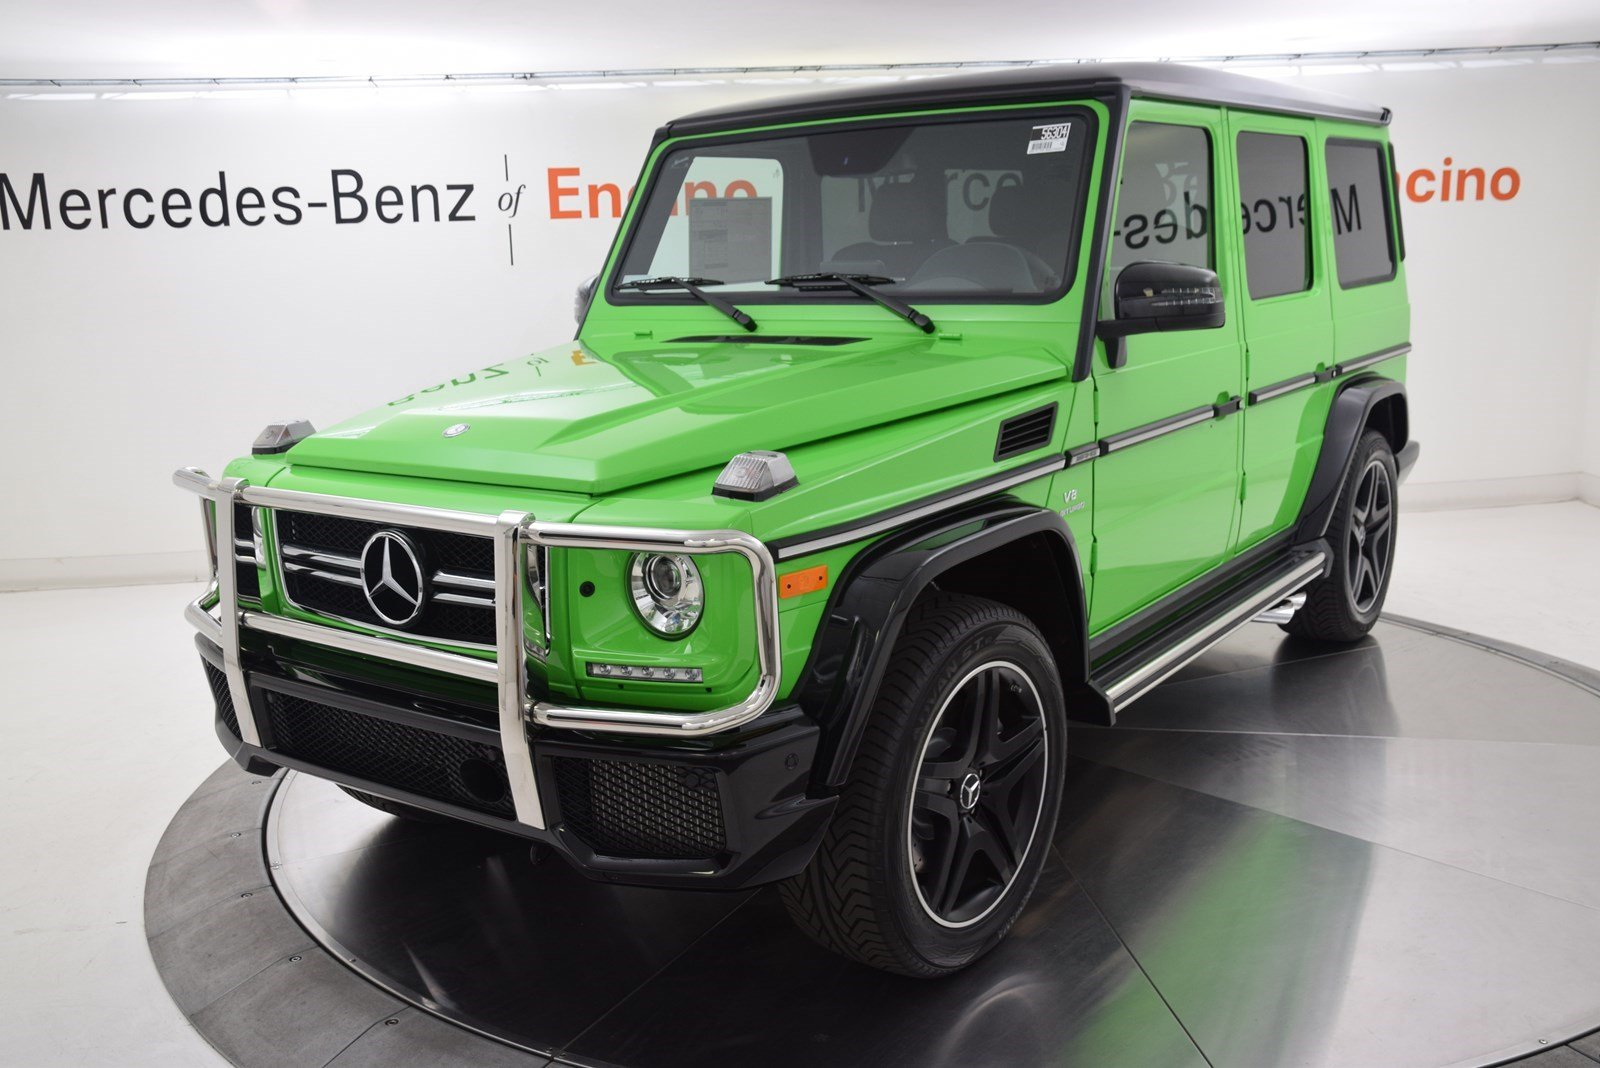 New 2017 mercedes benz g class g 63 amg suv suv in encino for Mercedes benz suv g class